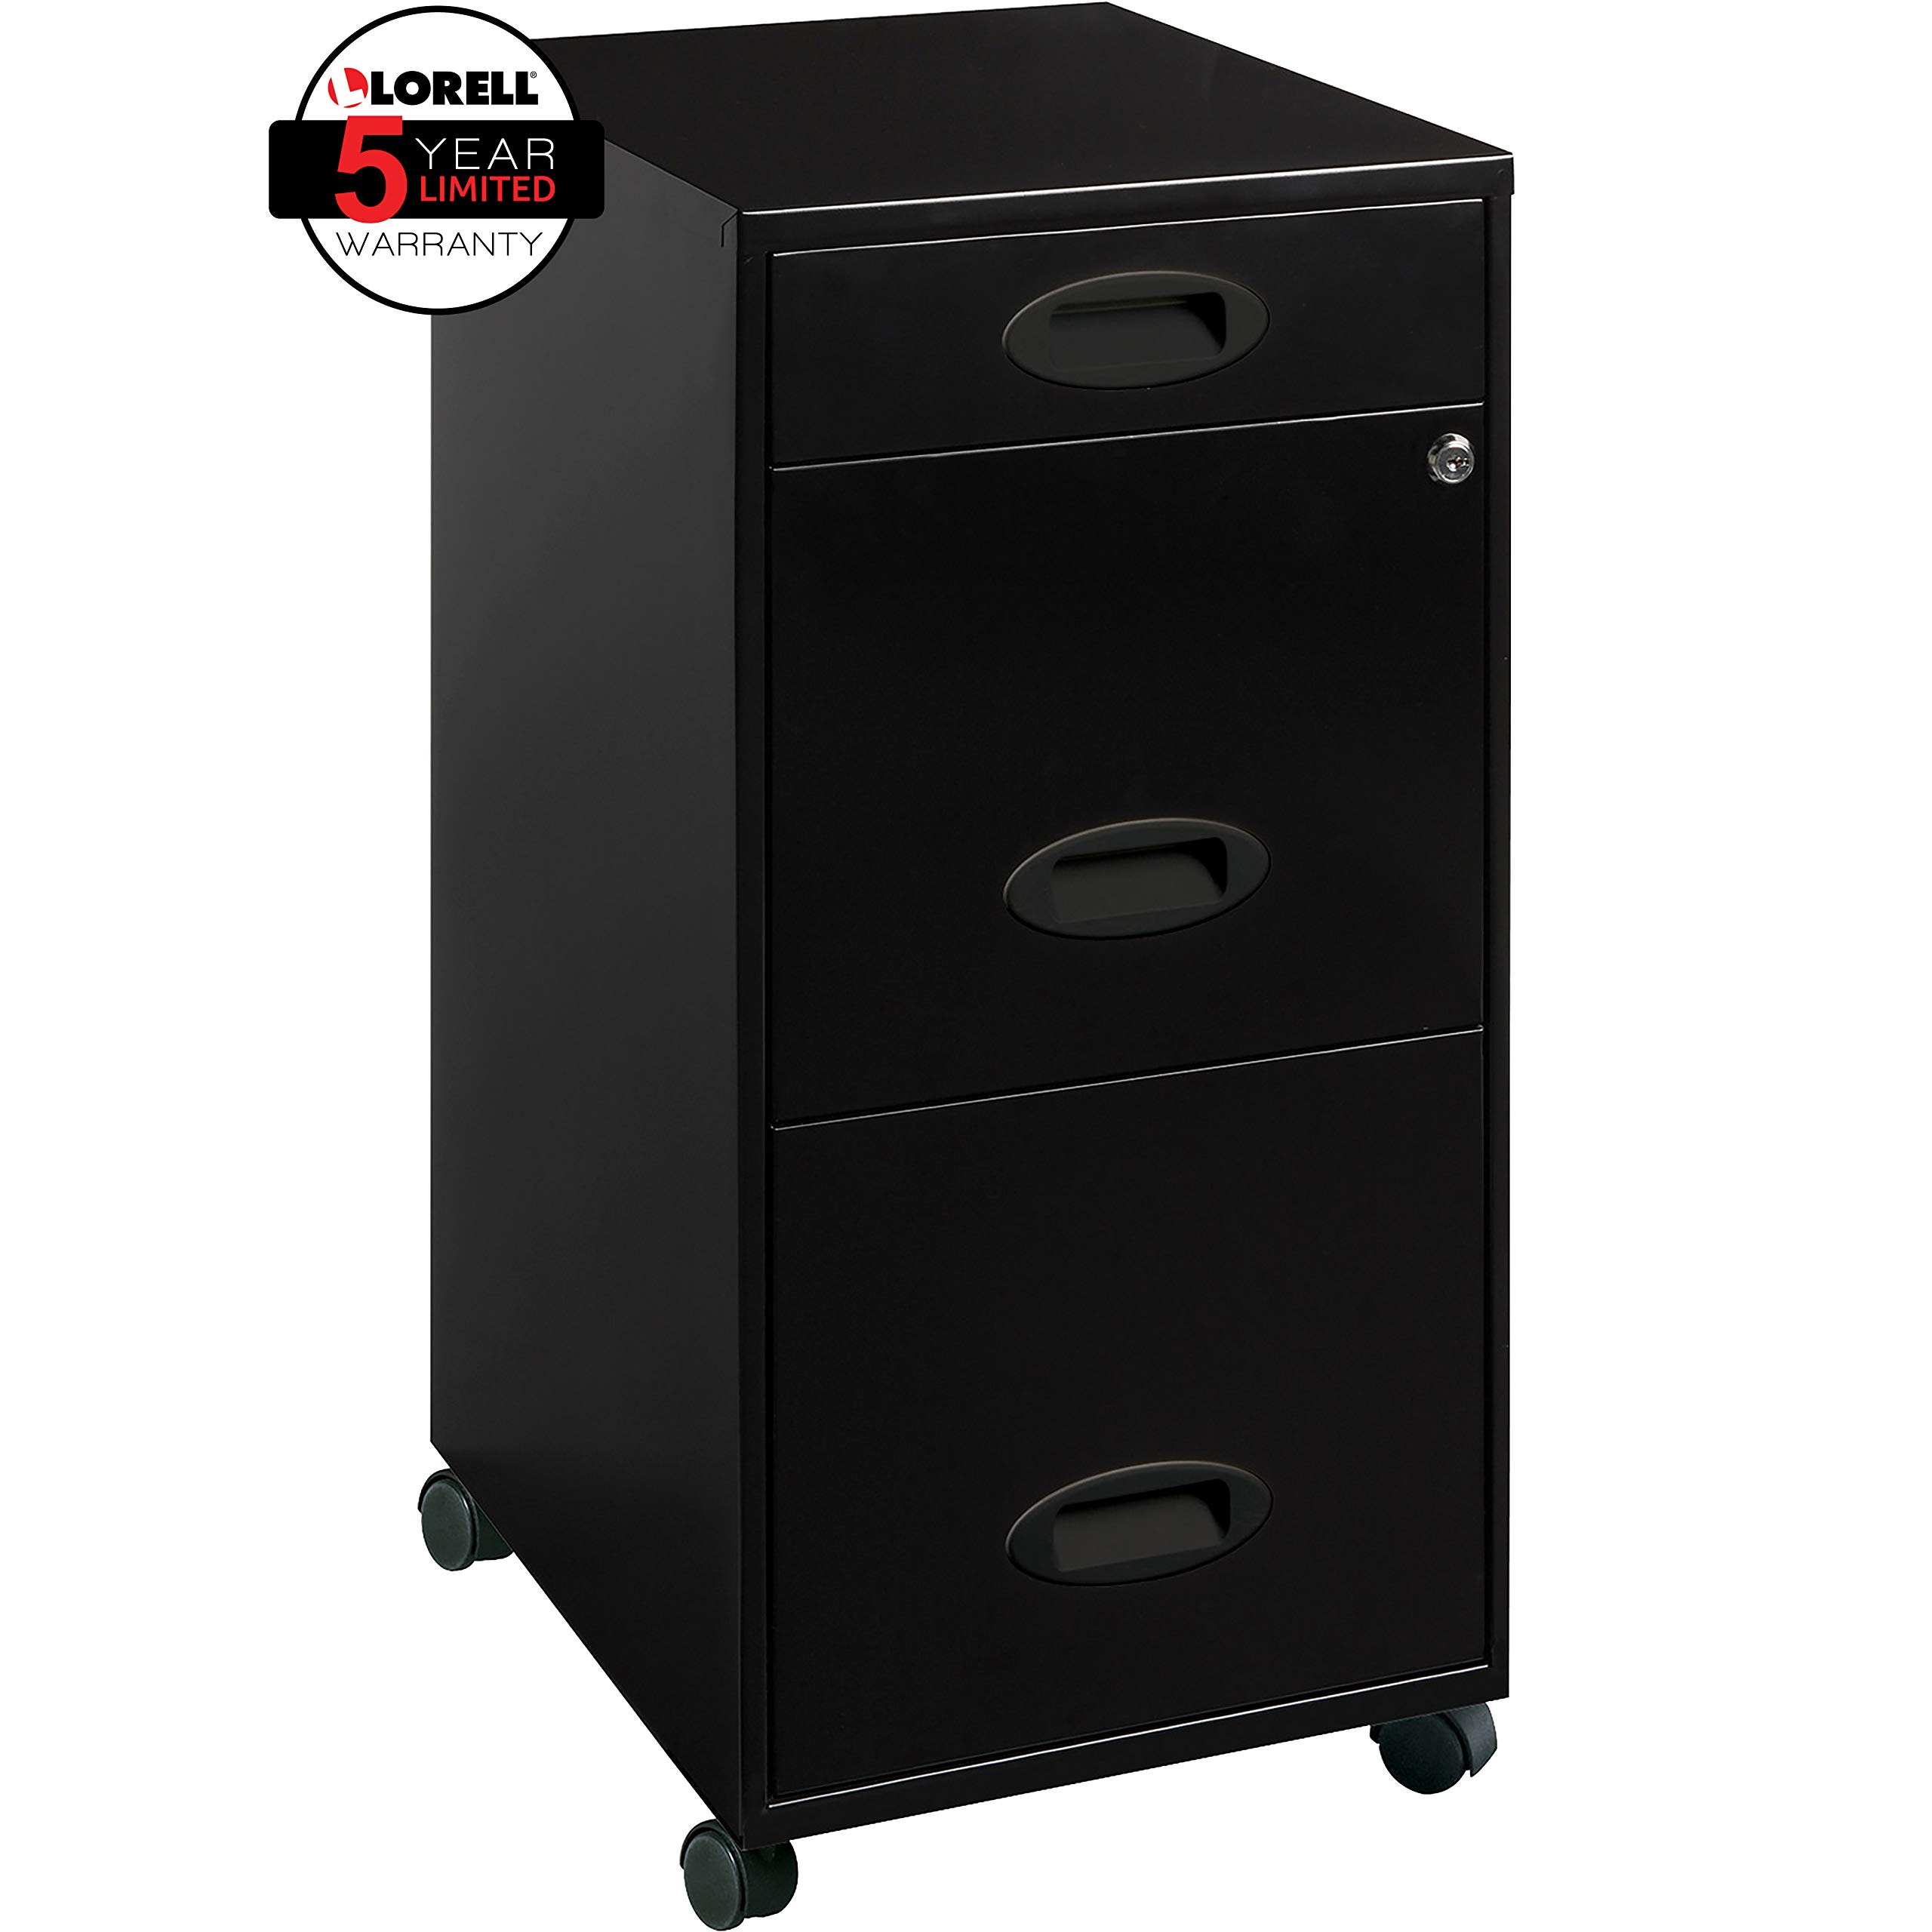 Lorell LLR17427 SOHO Mobile Cabinet, Black by Lorell